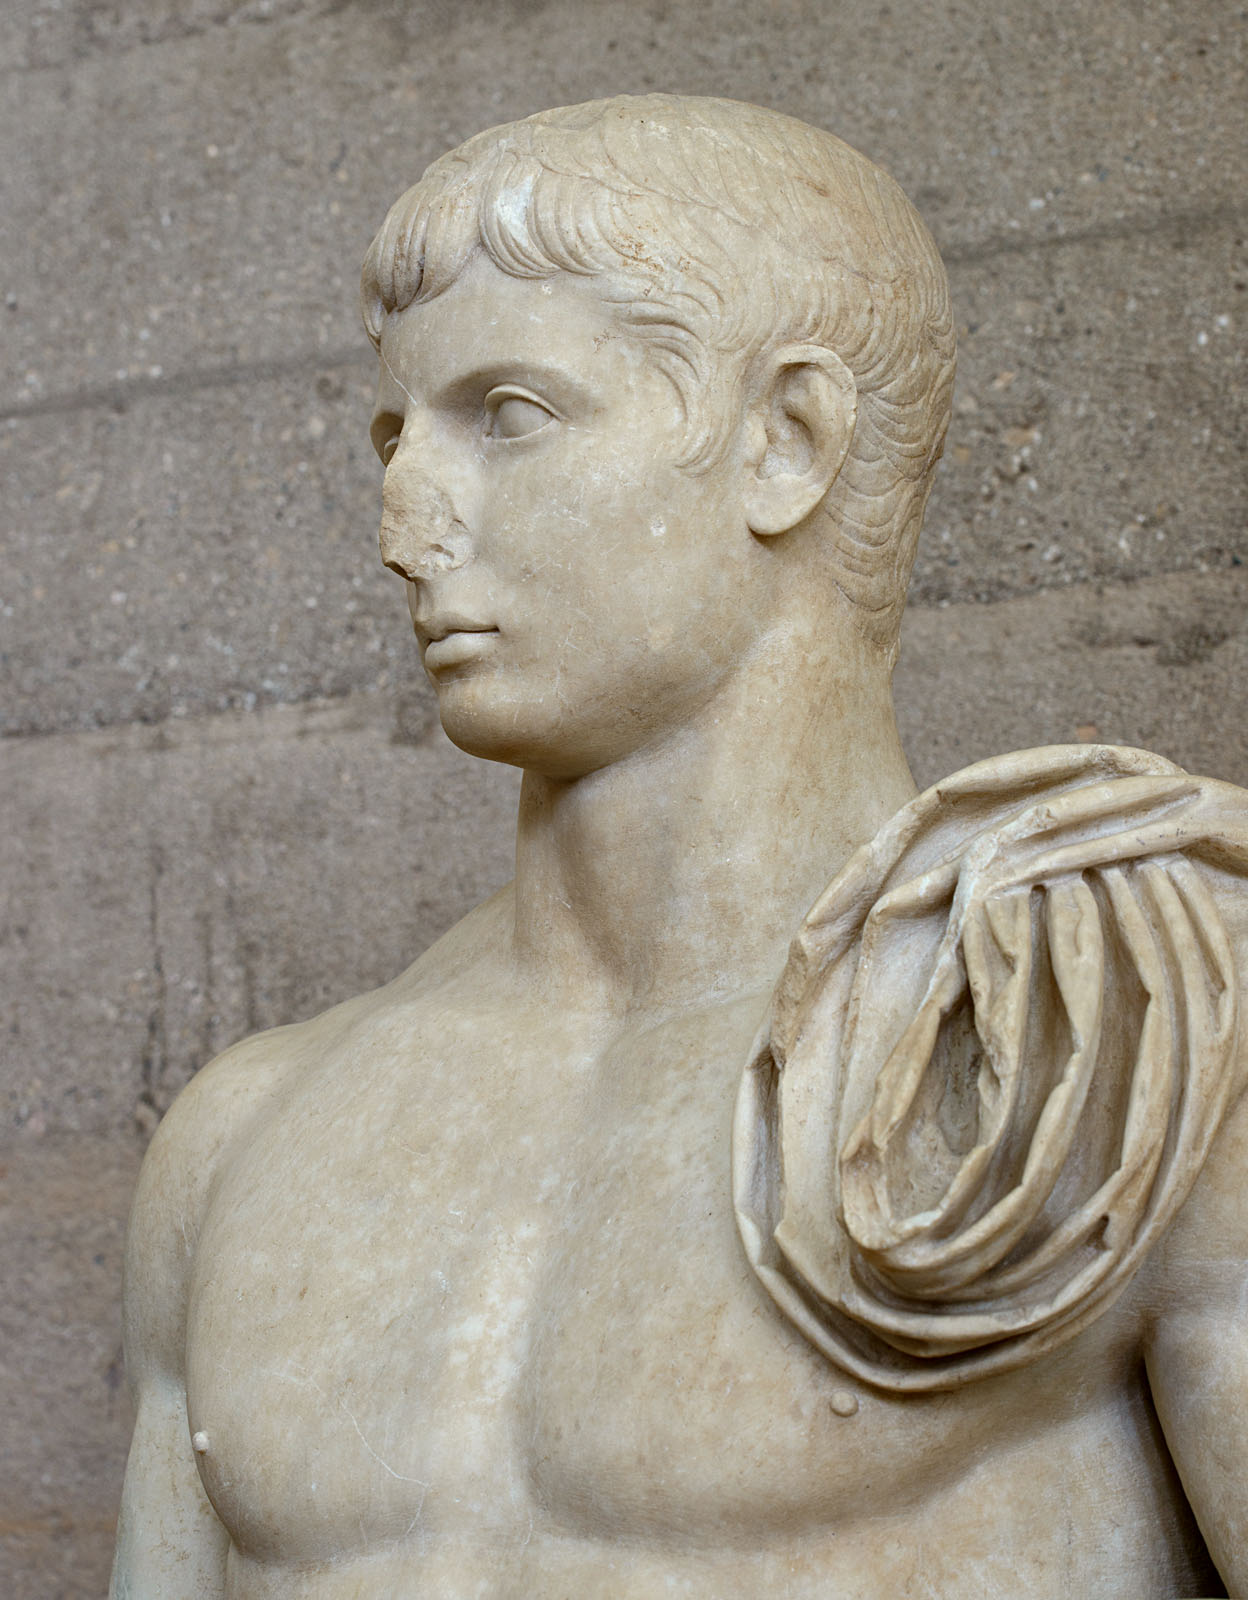 Gaius Caesar. Marble. Neo-Attic work. 1—14 CE. Inv. No. S-1080. Corinth, Archaeological Museum of Ancient Corinth